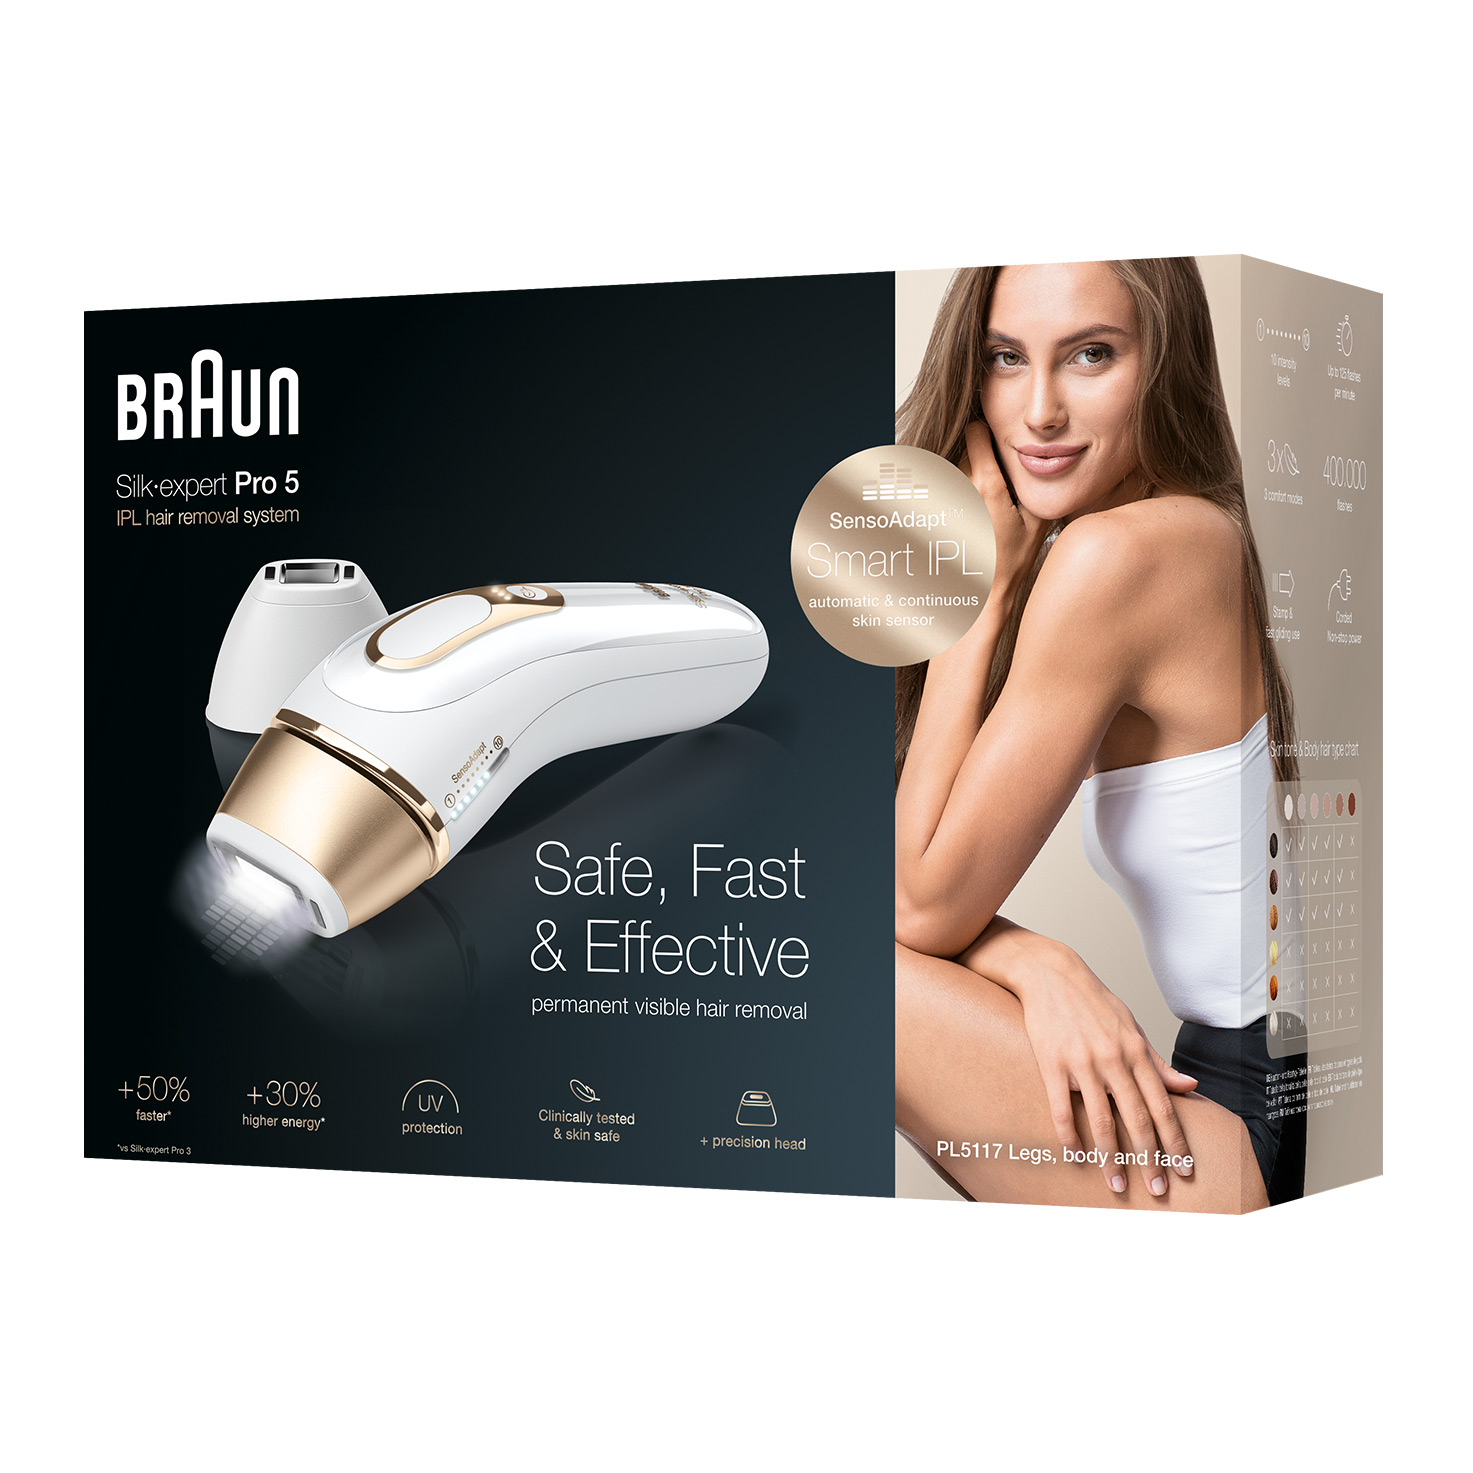 Braun Silk-expert Pro 5 PL5117 - Packaging